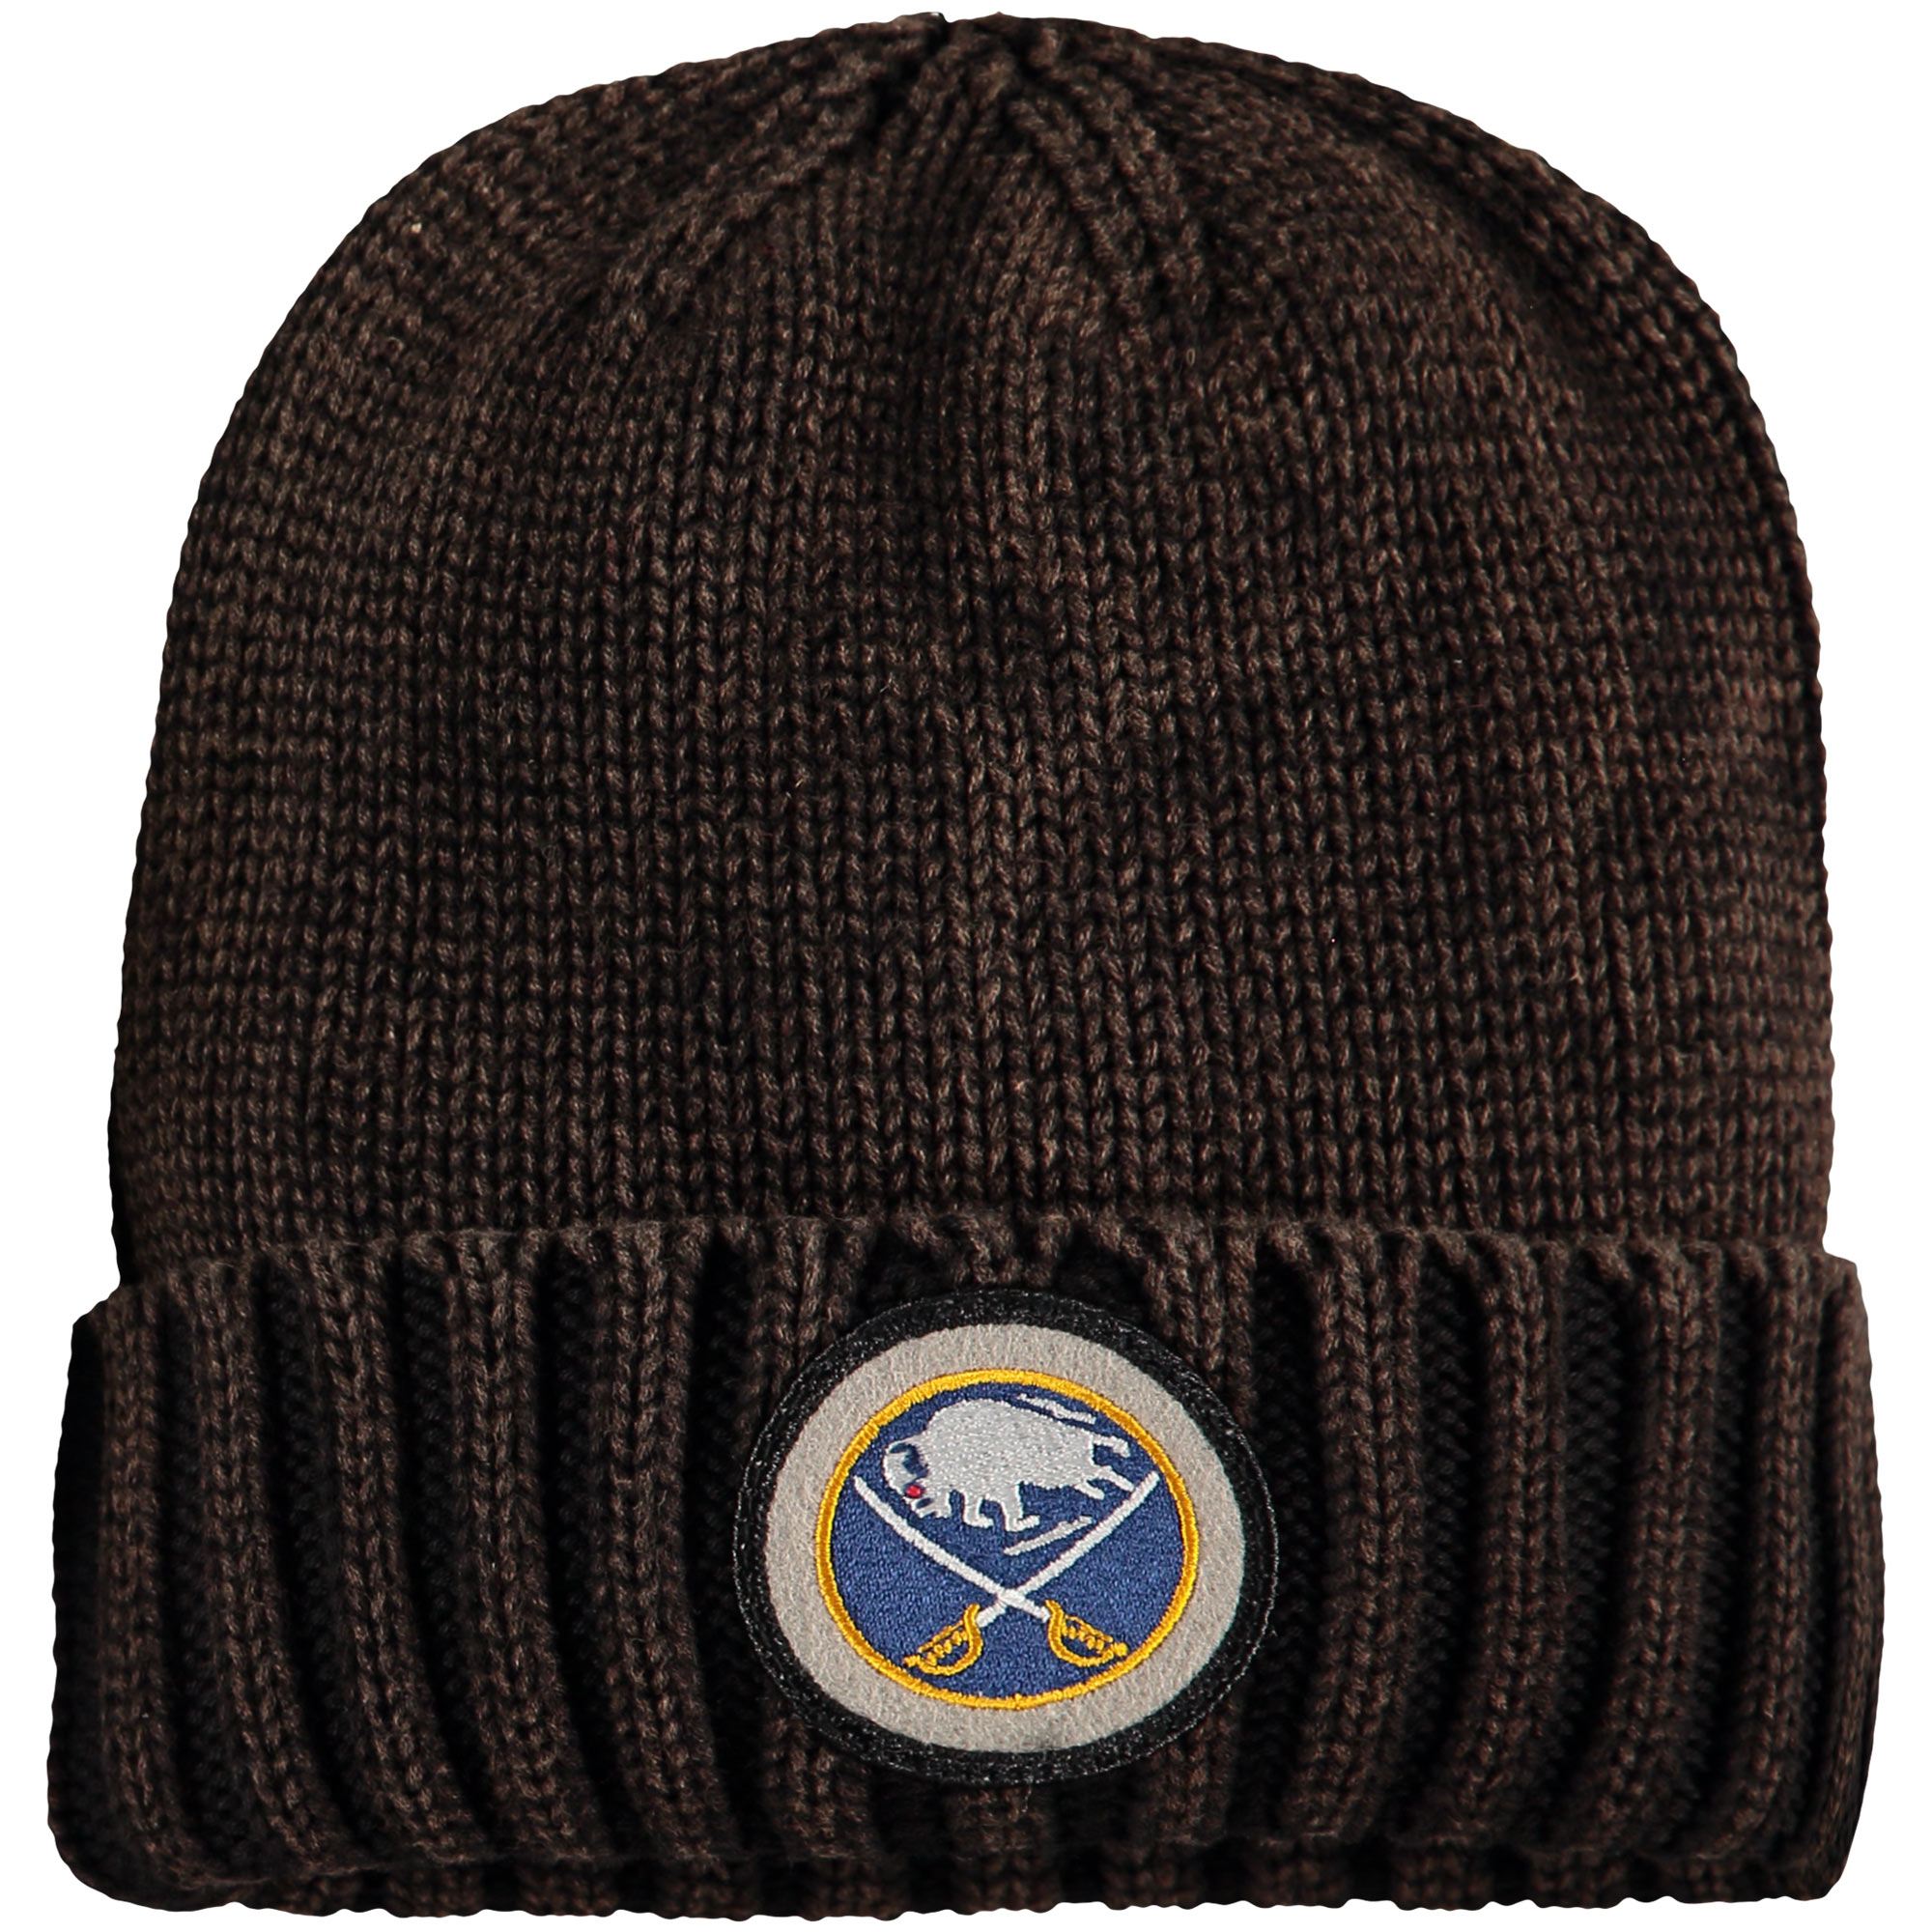 Buffalo Sabres Mitchell & Ness Vintage Ribbed Cuffed Knit Hat Brown OSFA by MITCHELL NESS CO.